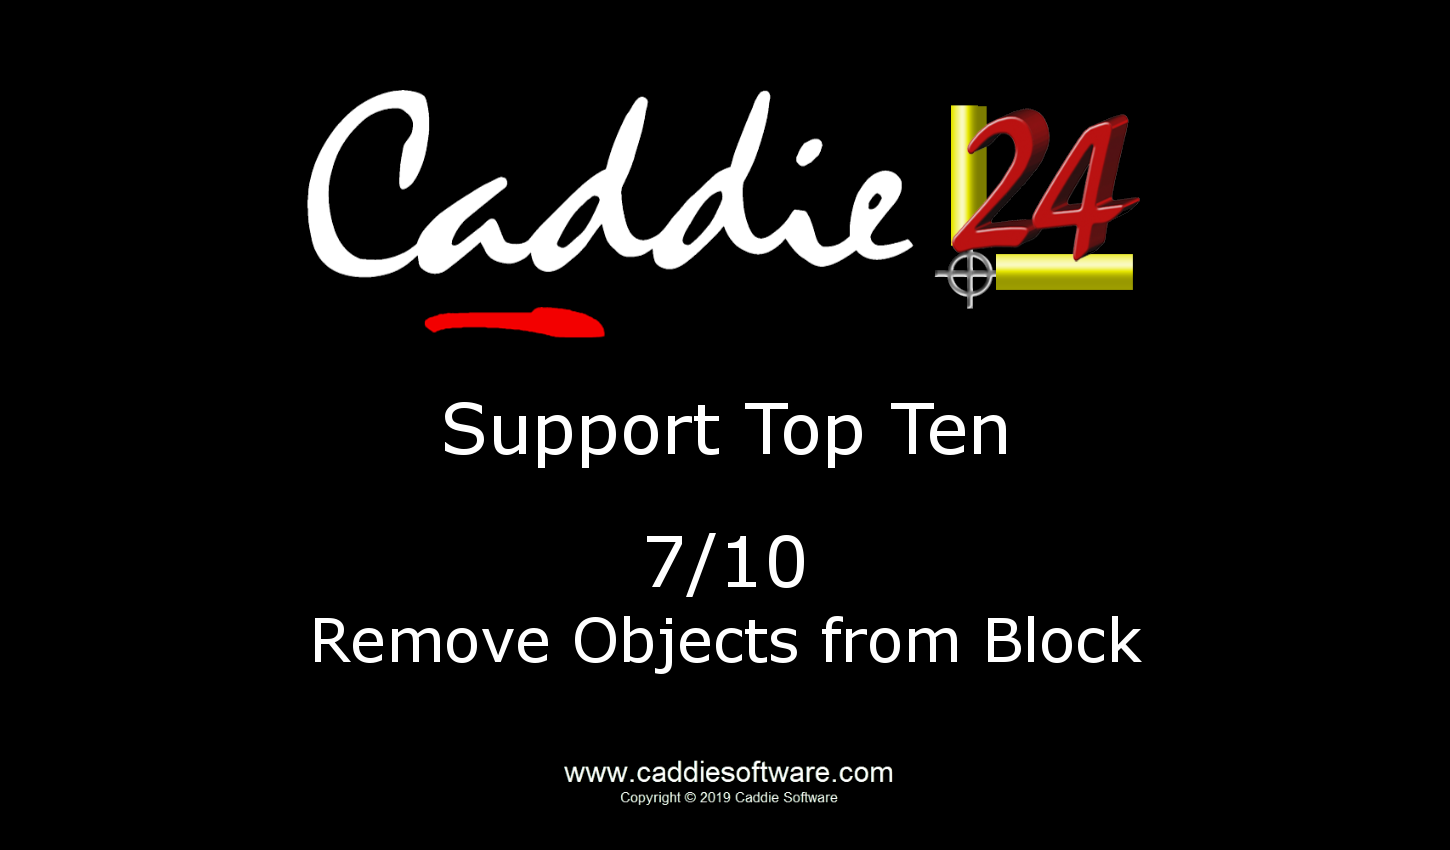 # 7/10 Remove Objects from Block